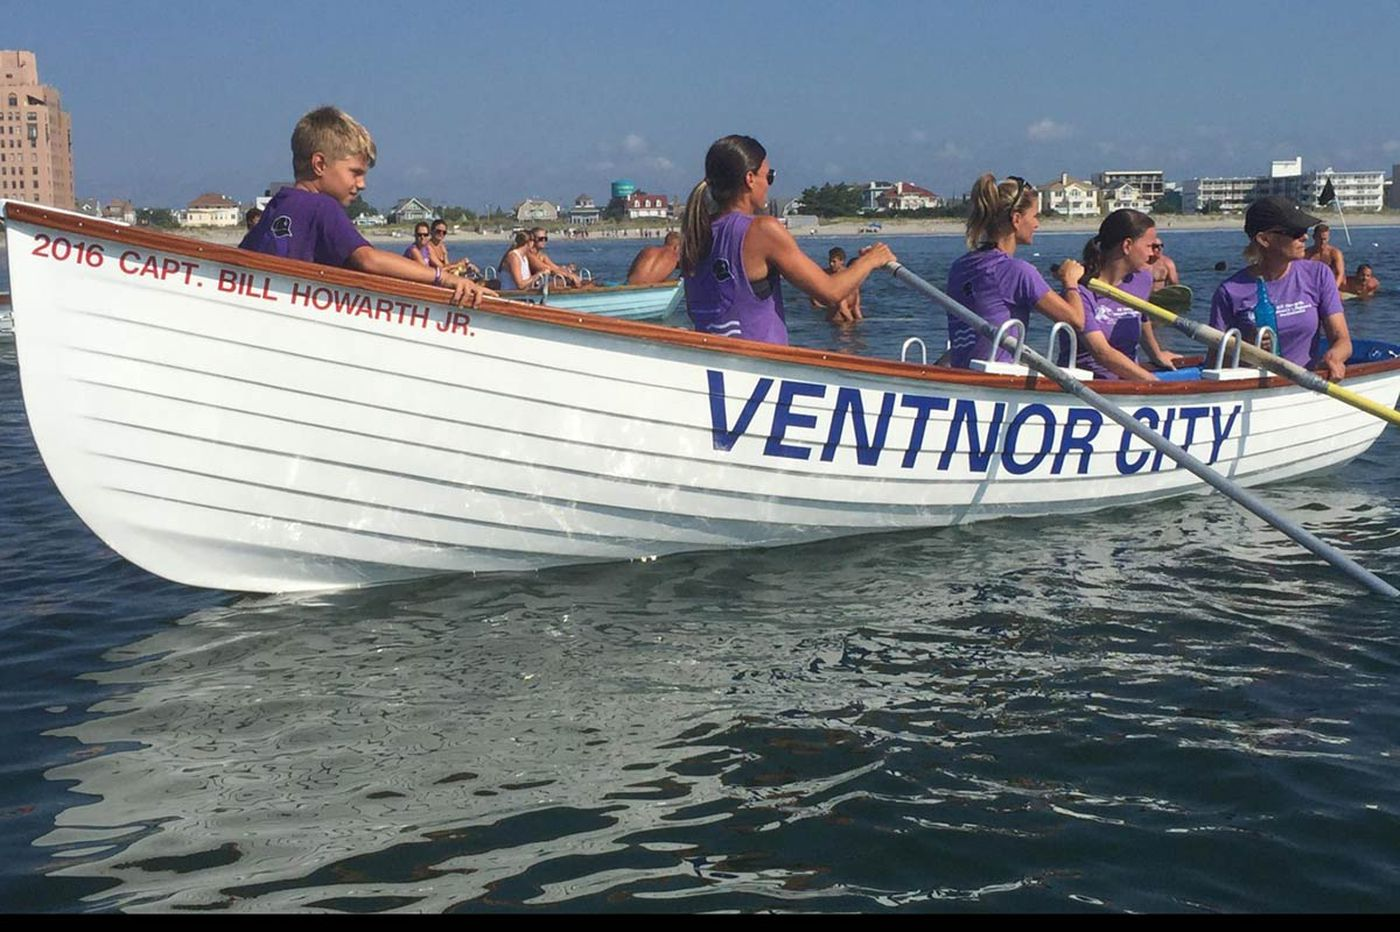 Ventnor lifeguards paddle out to say goodbye to one of their own